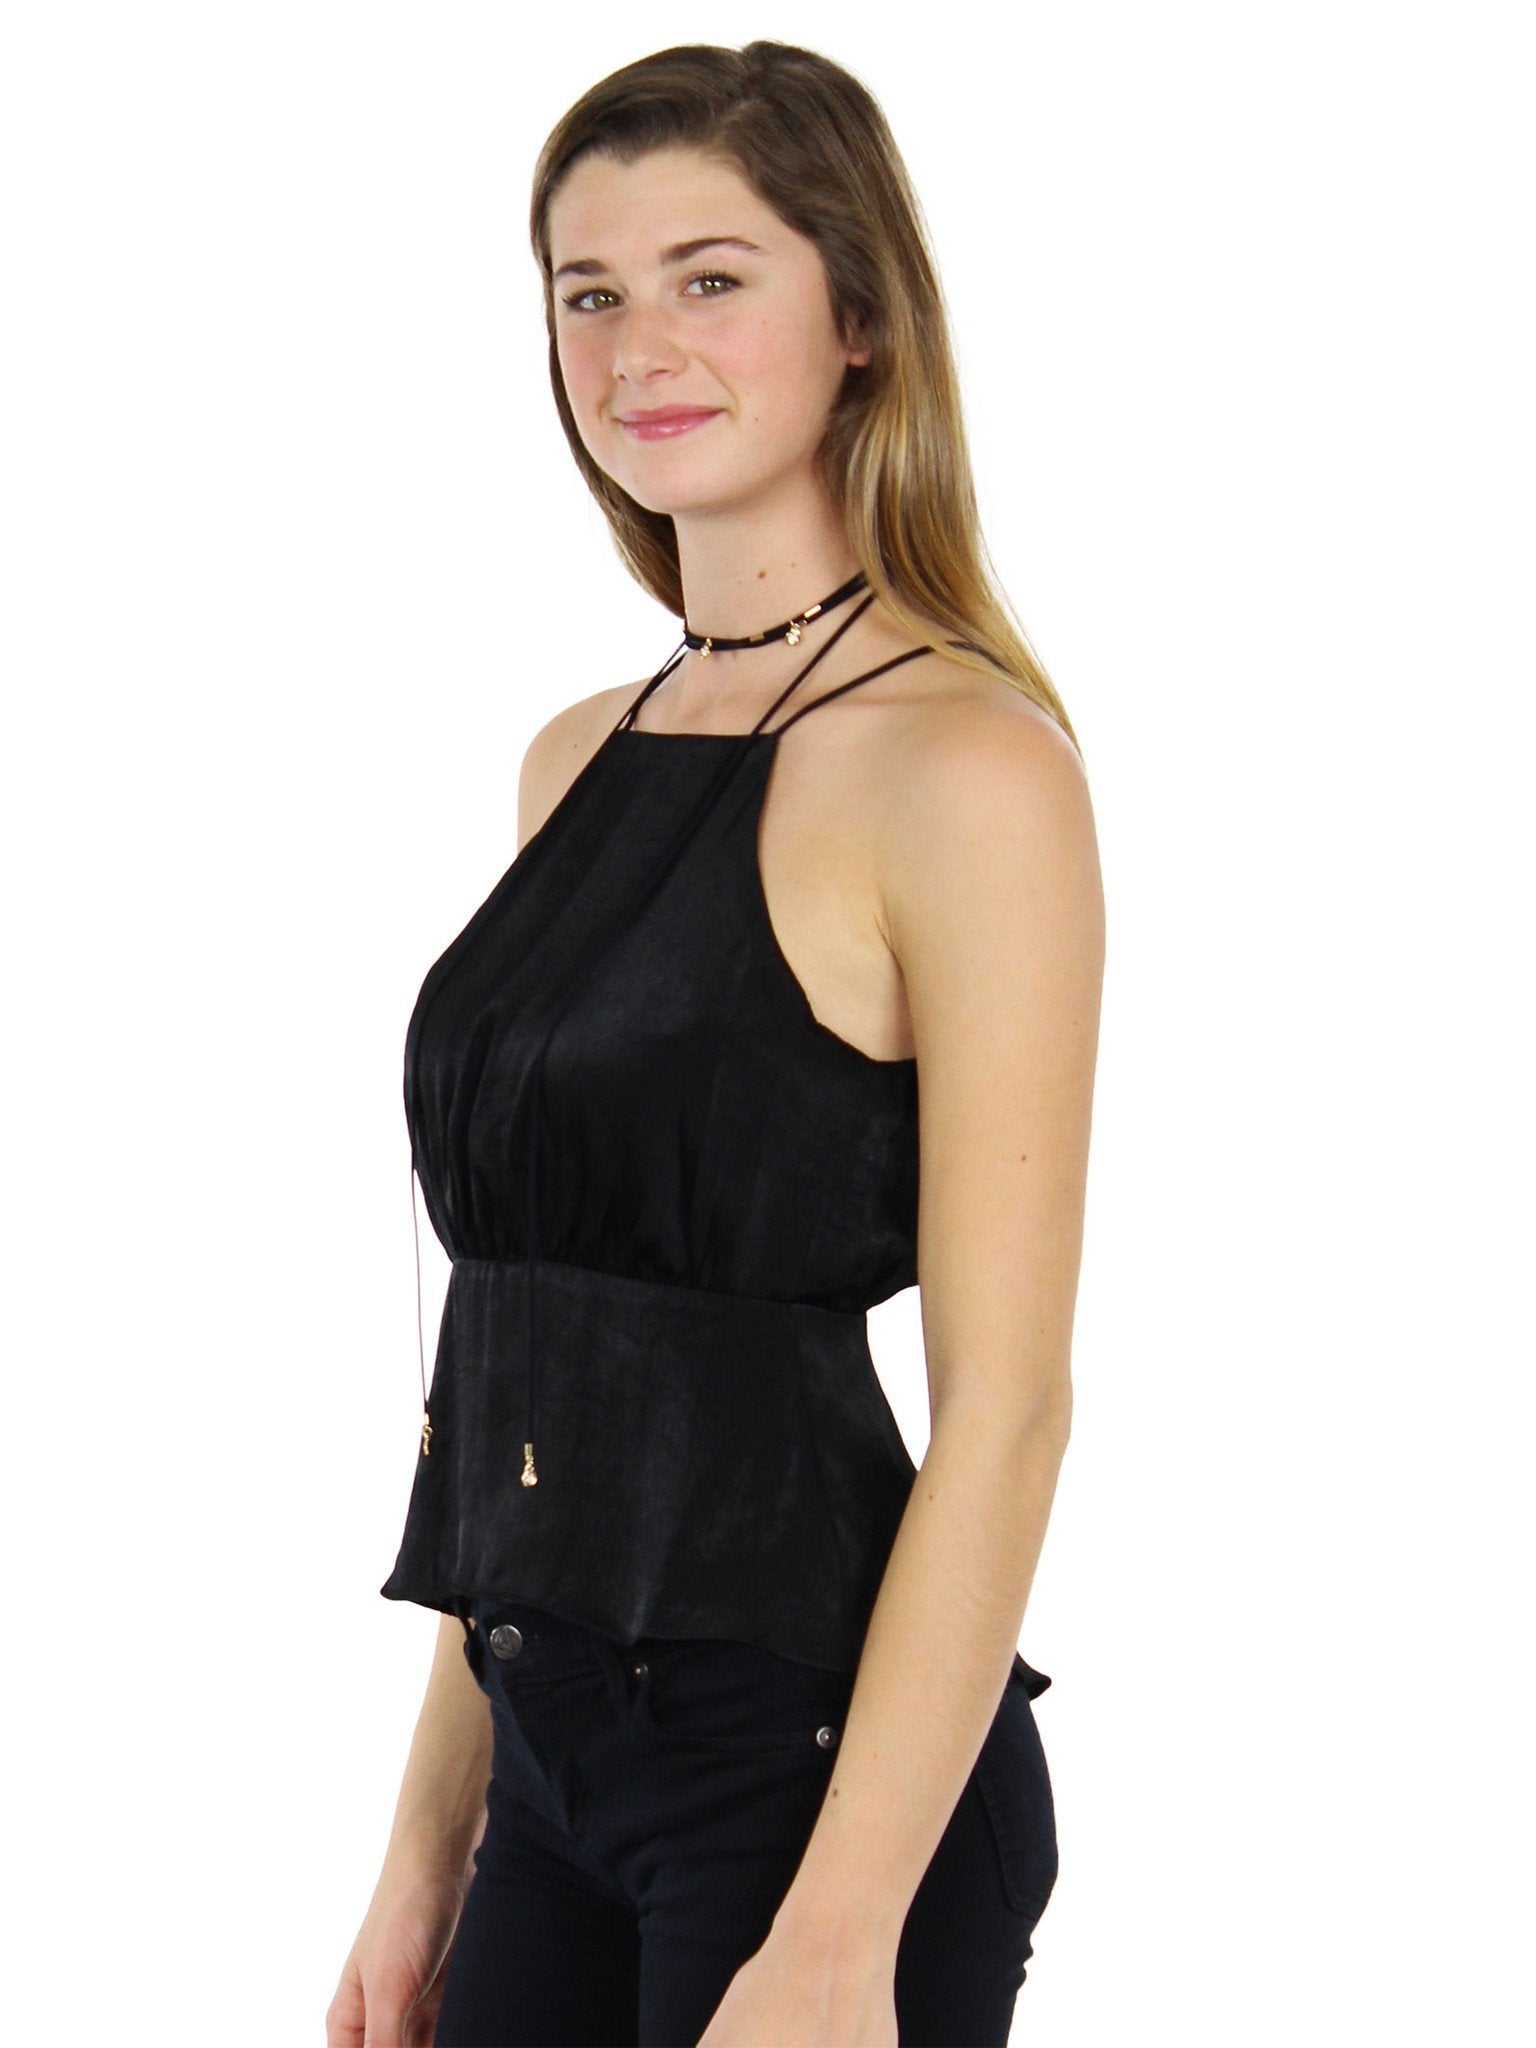 Women wearing a top rental from Lush called One Fine Evening Black Satin Top